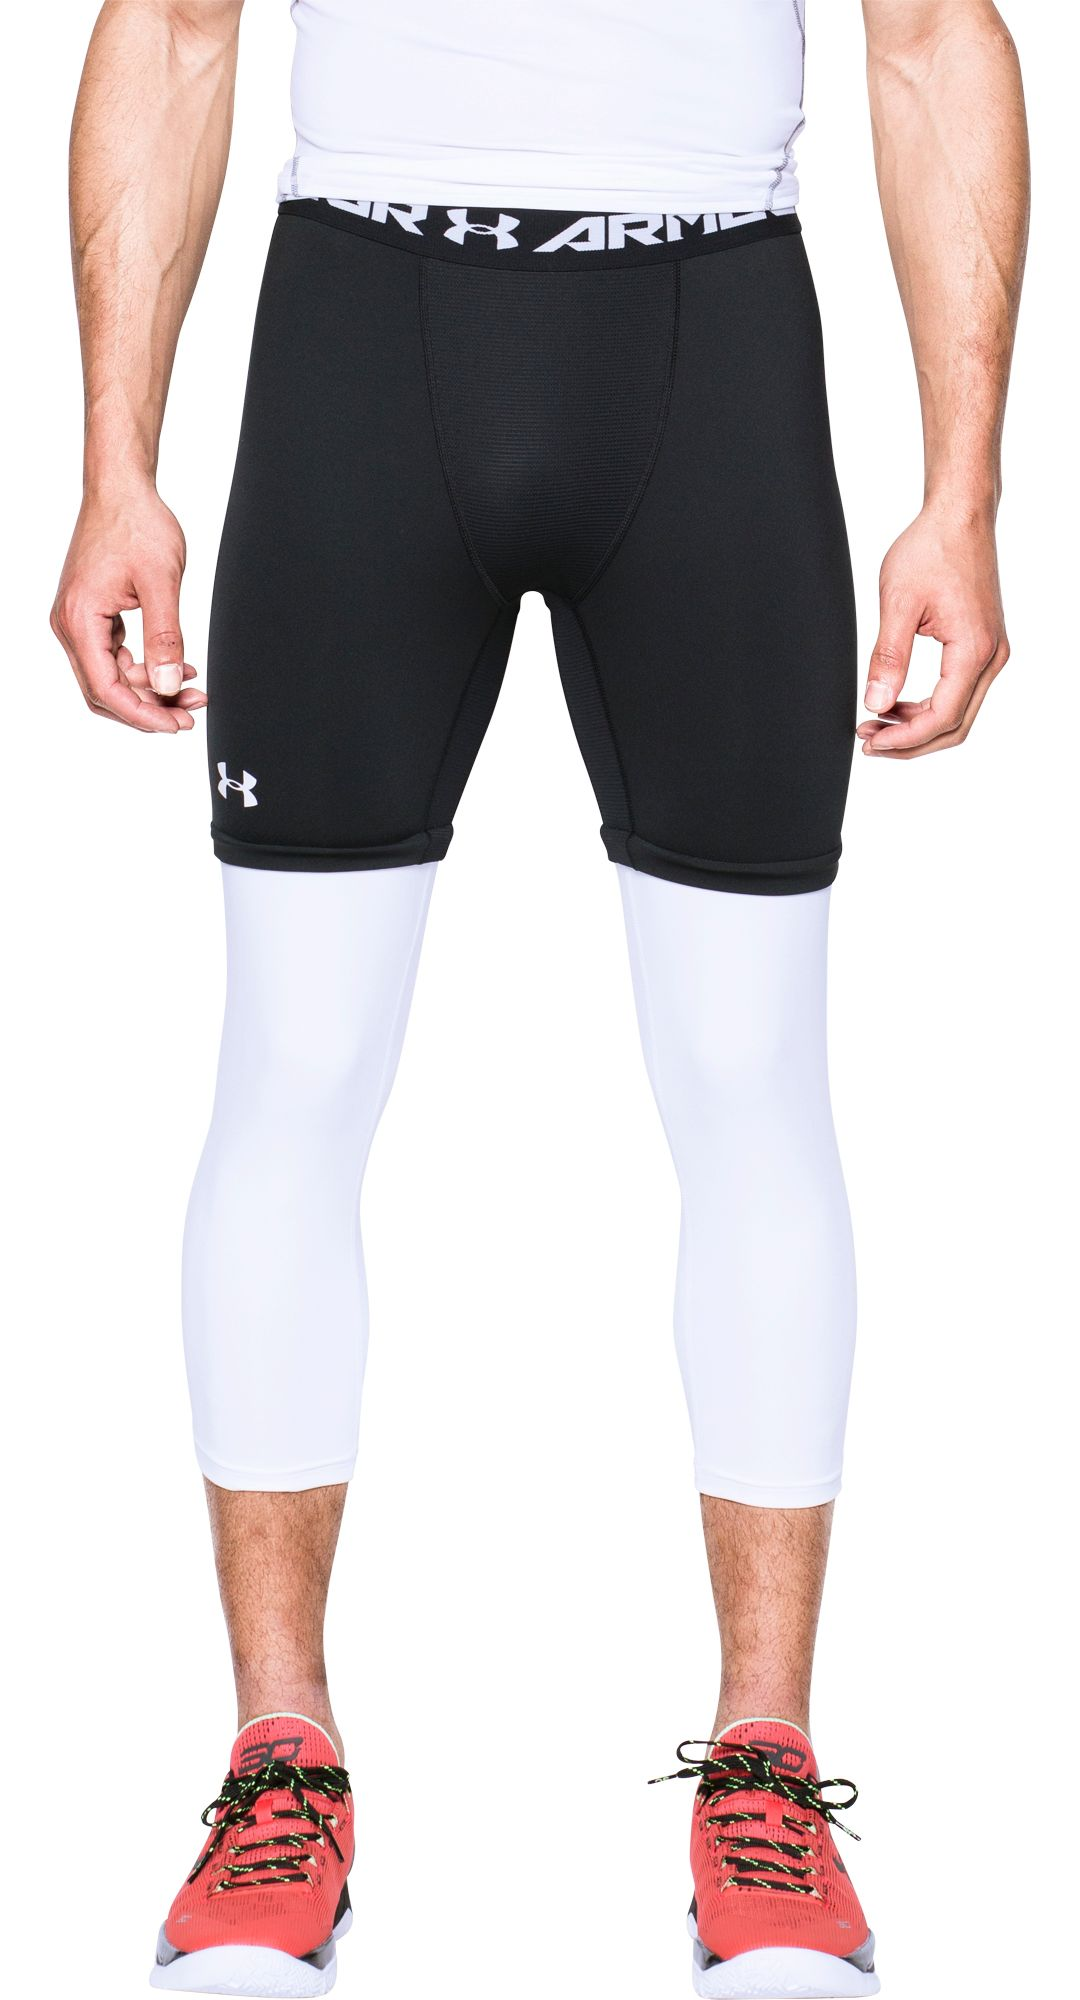 505f0976e8600 Under Armour Men's SC30 Three Quarter Length Basketball Leggings ...